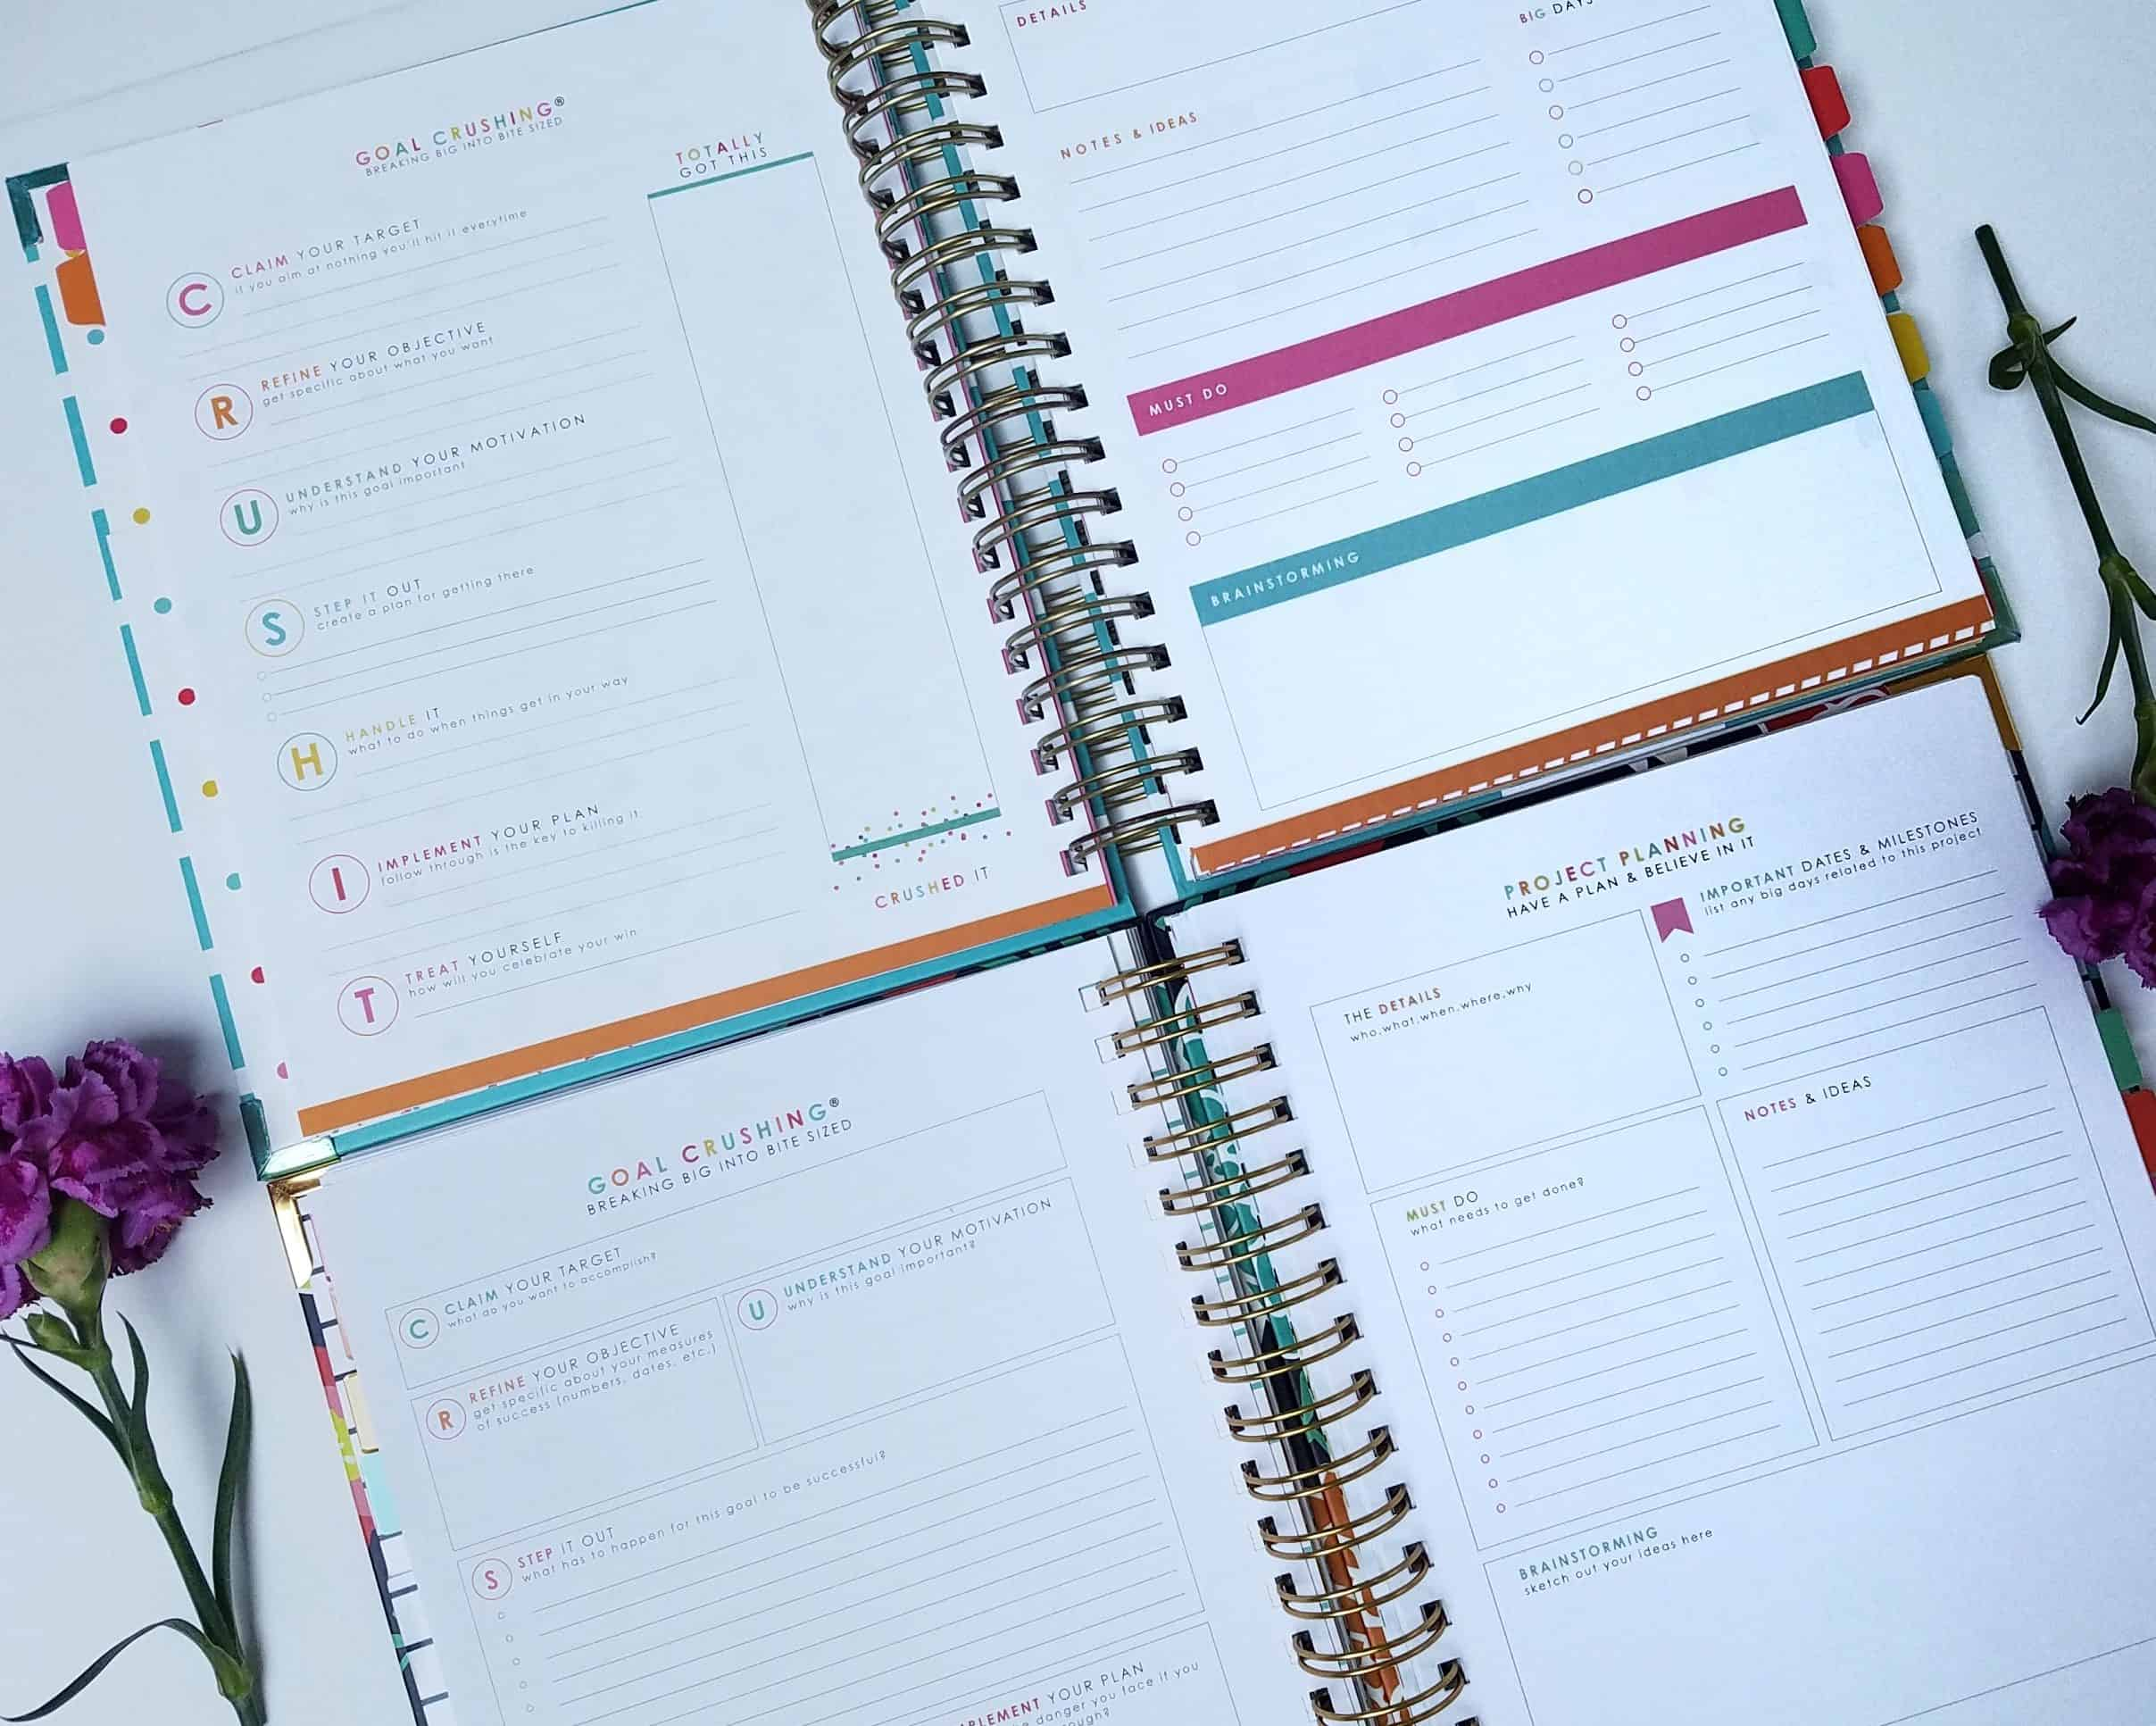 Ready to crush your goals and get your life in order? Look inside the new Living Well Planner that's helped me do just that time and time again!